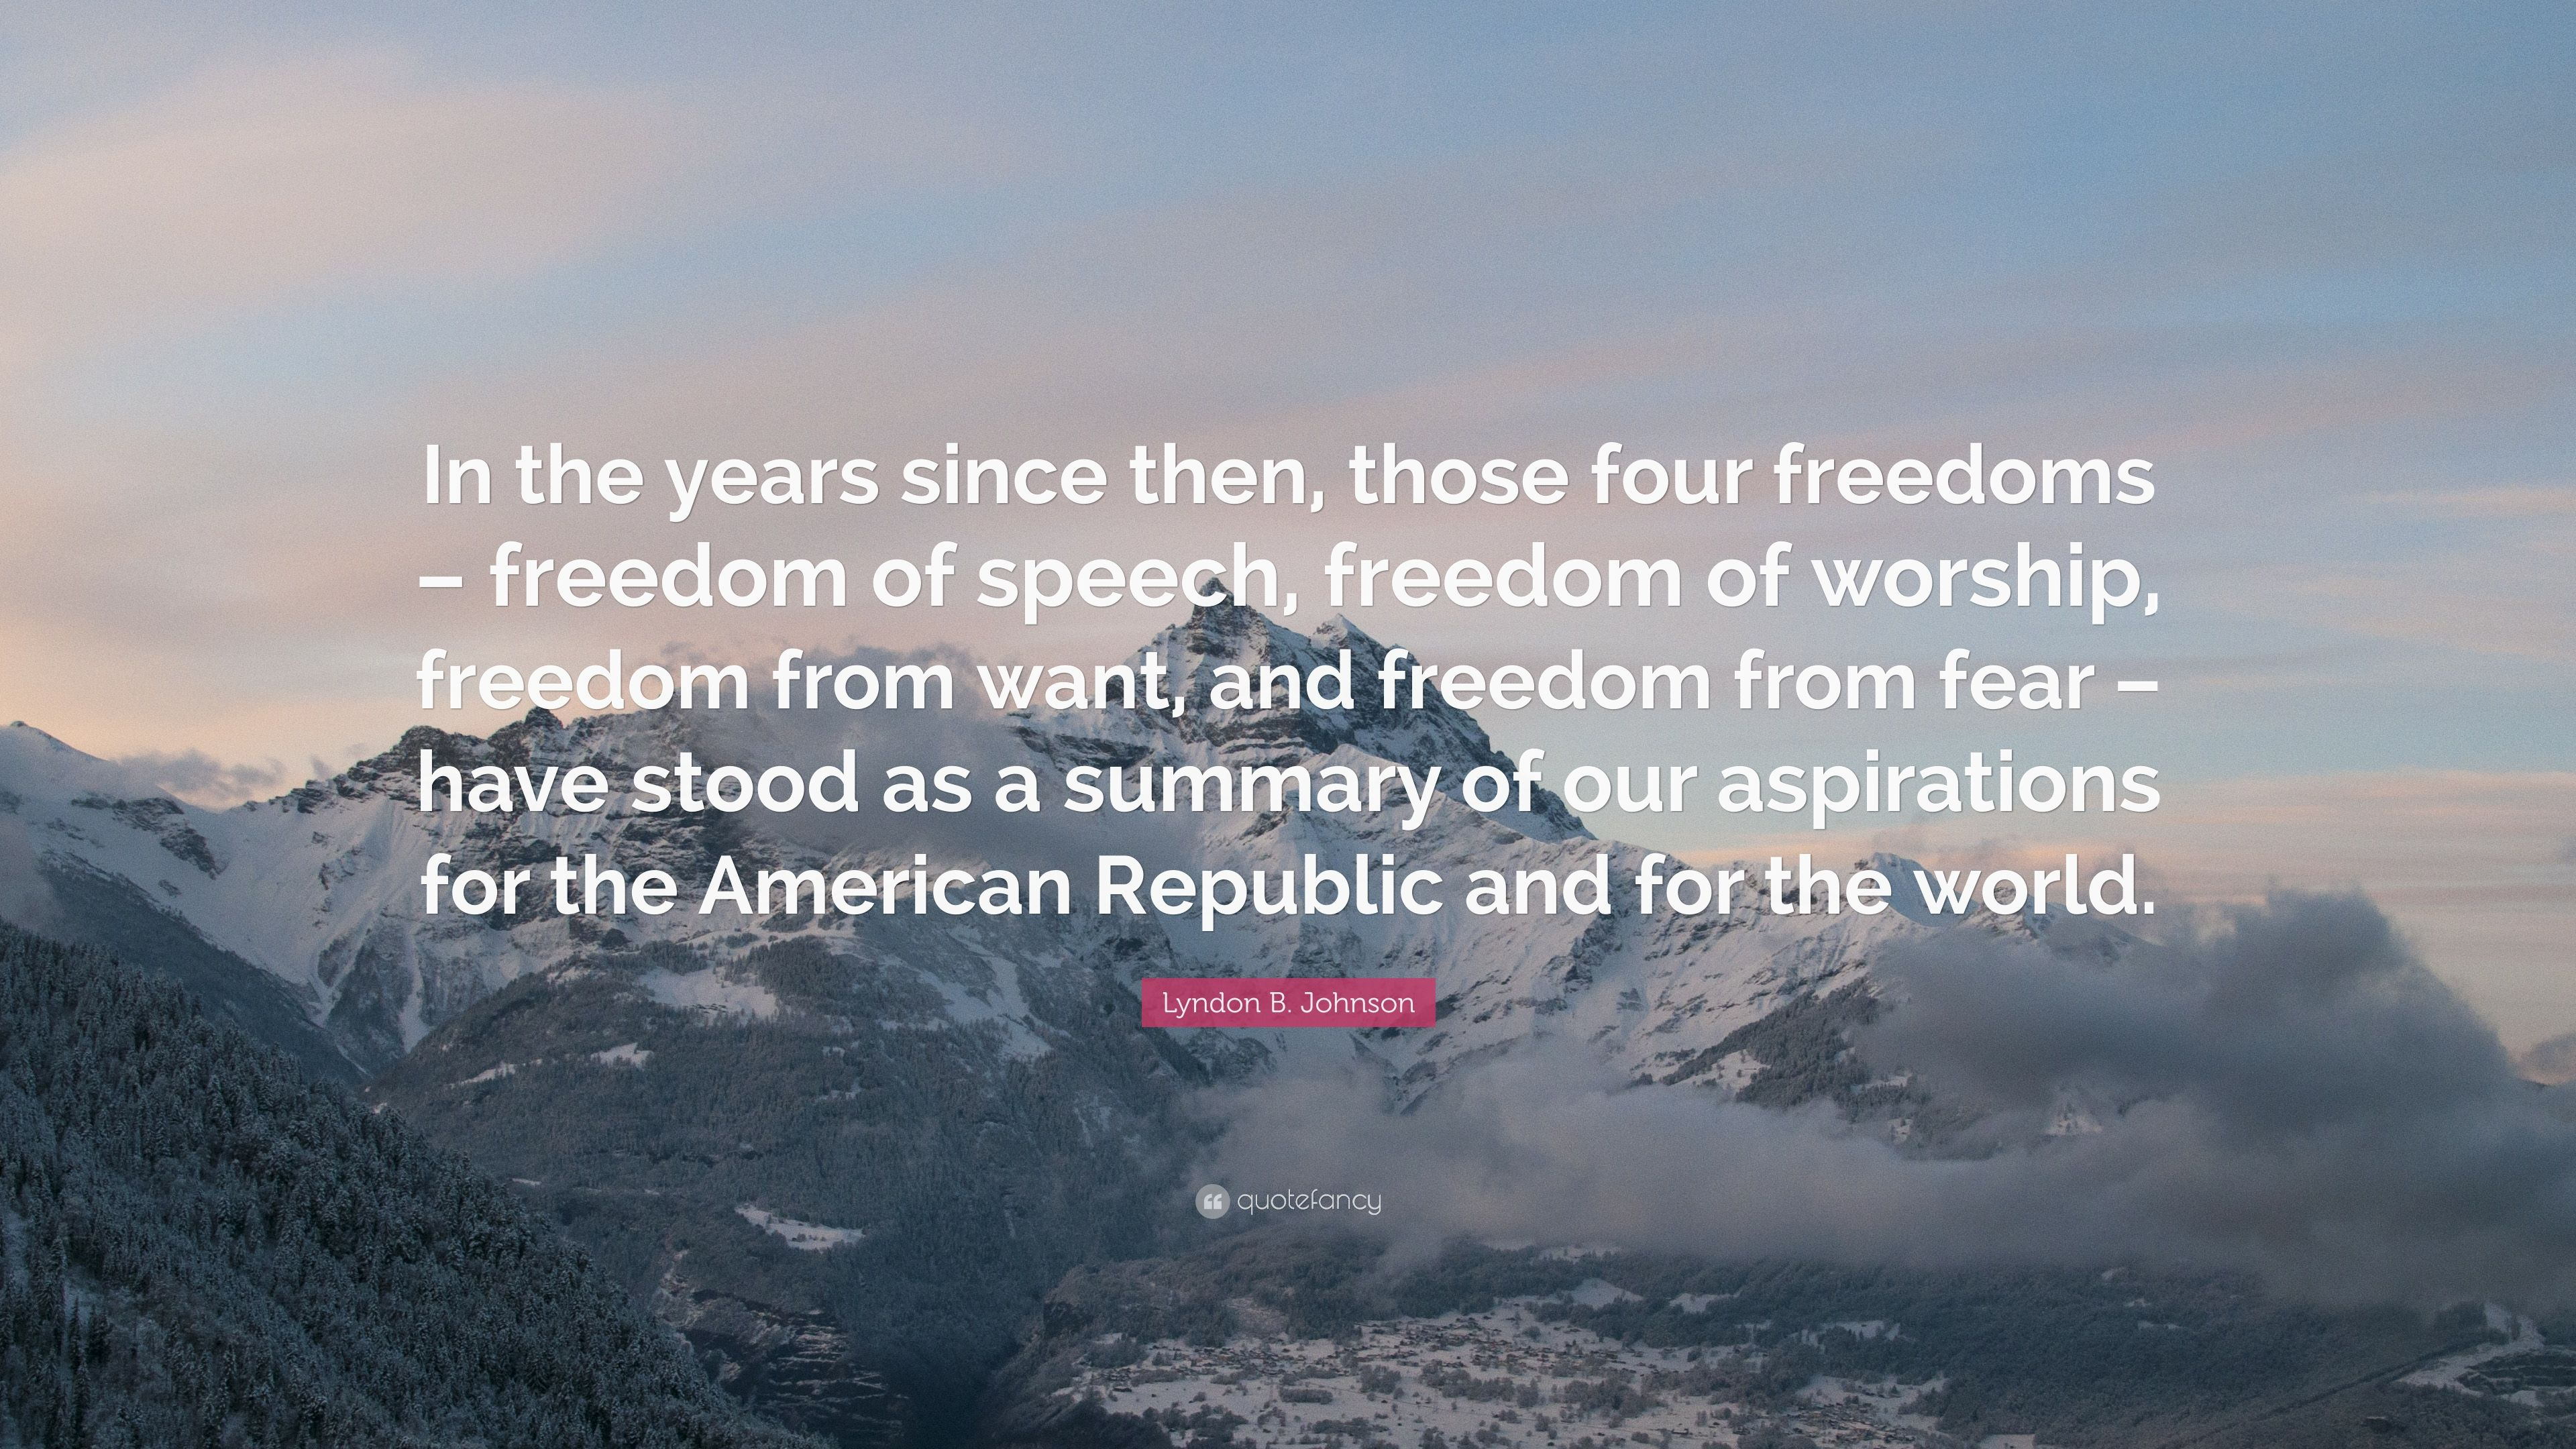 the four freedoms summary